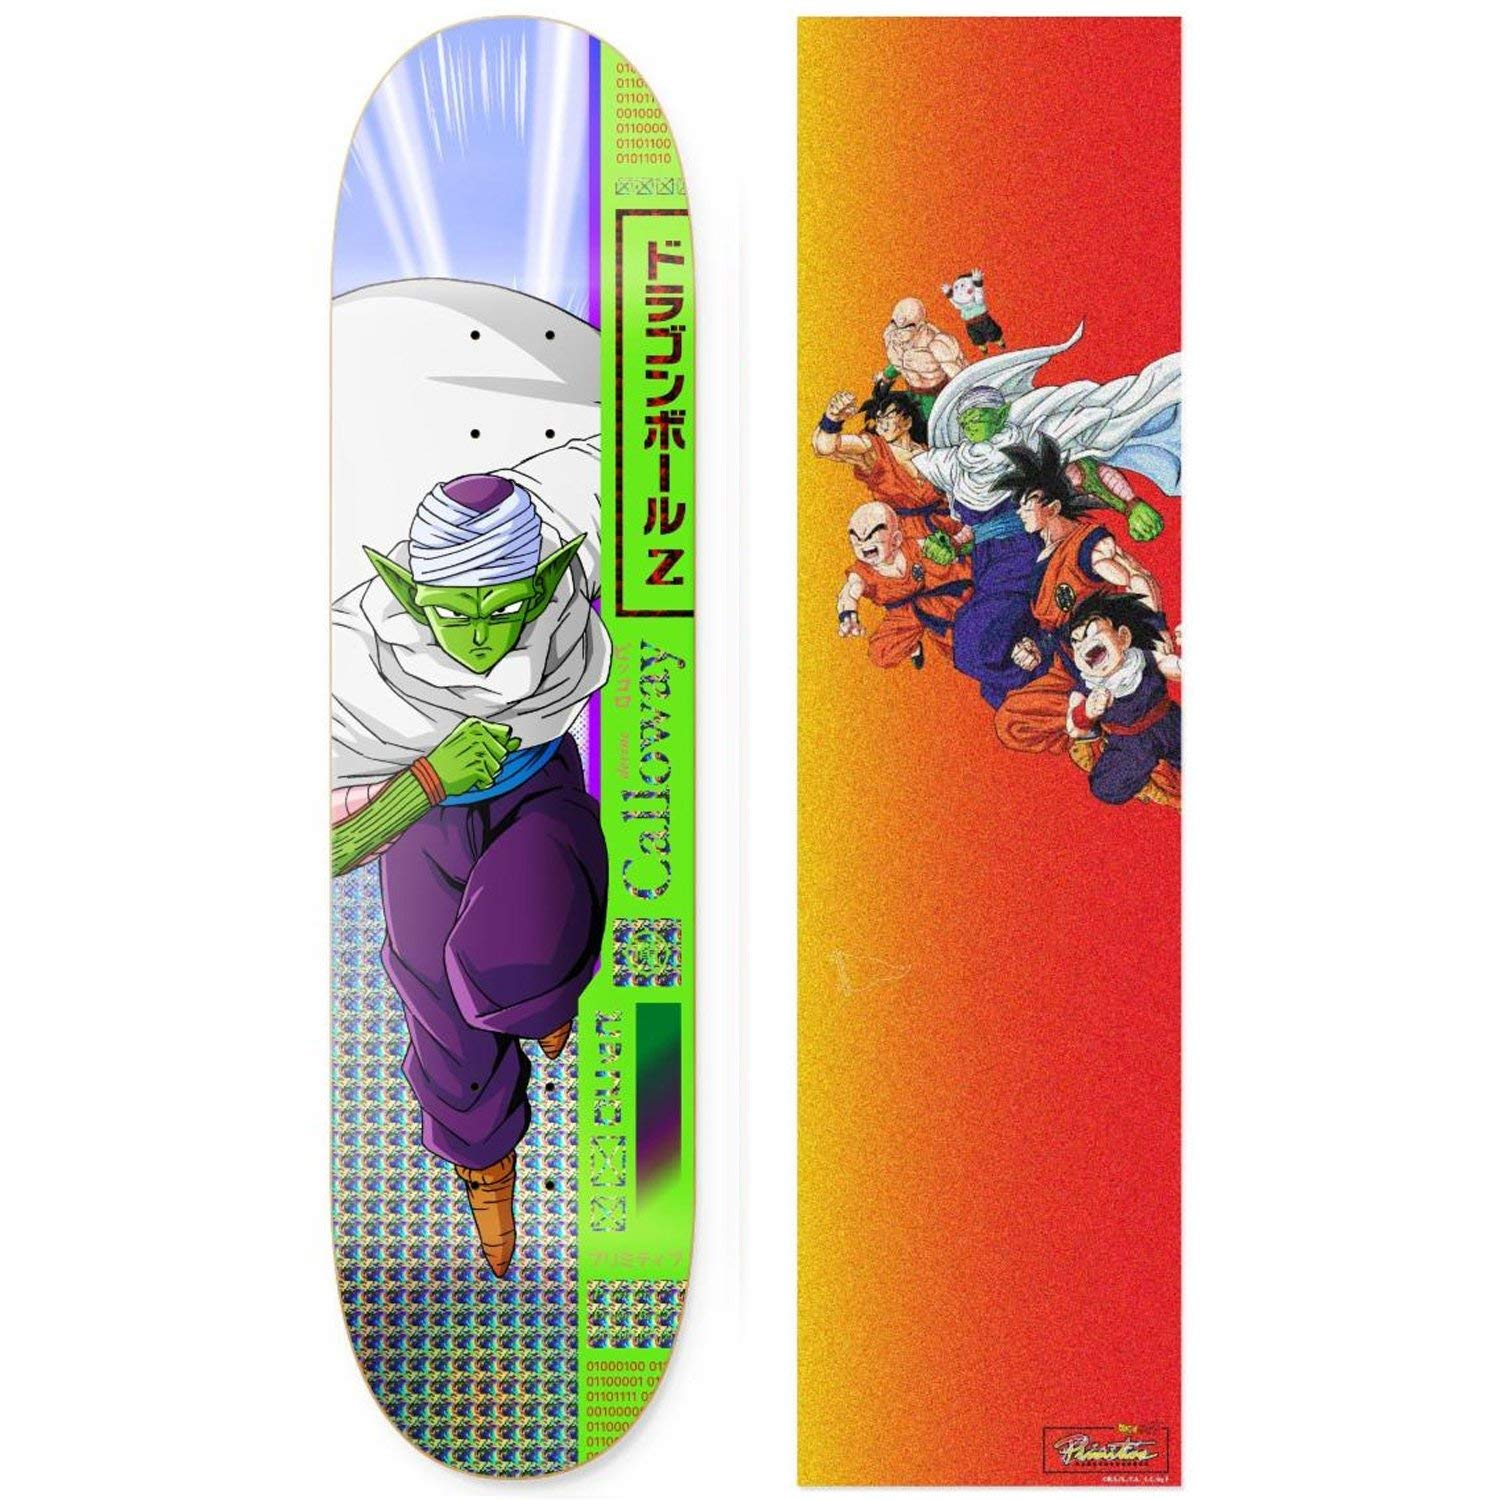 Primitive Dragon Ball Z Calloway Piccolo Skateboard Deck 8.0 w Gradient Griptape